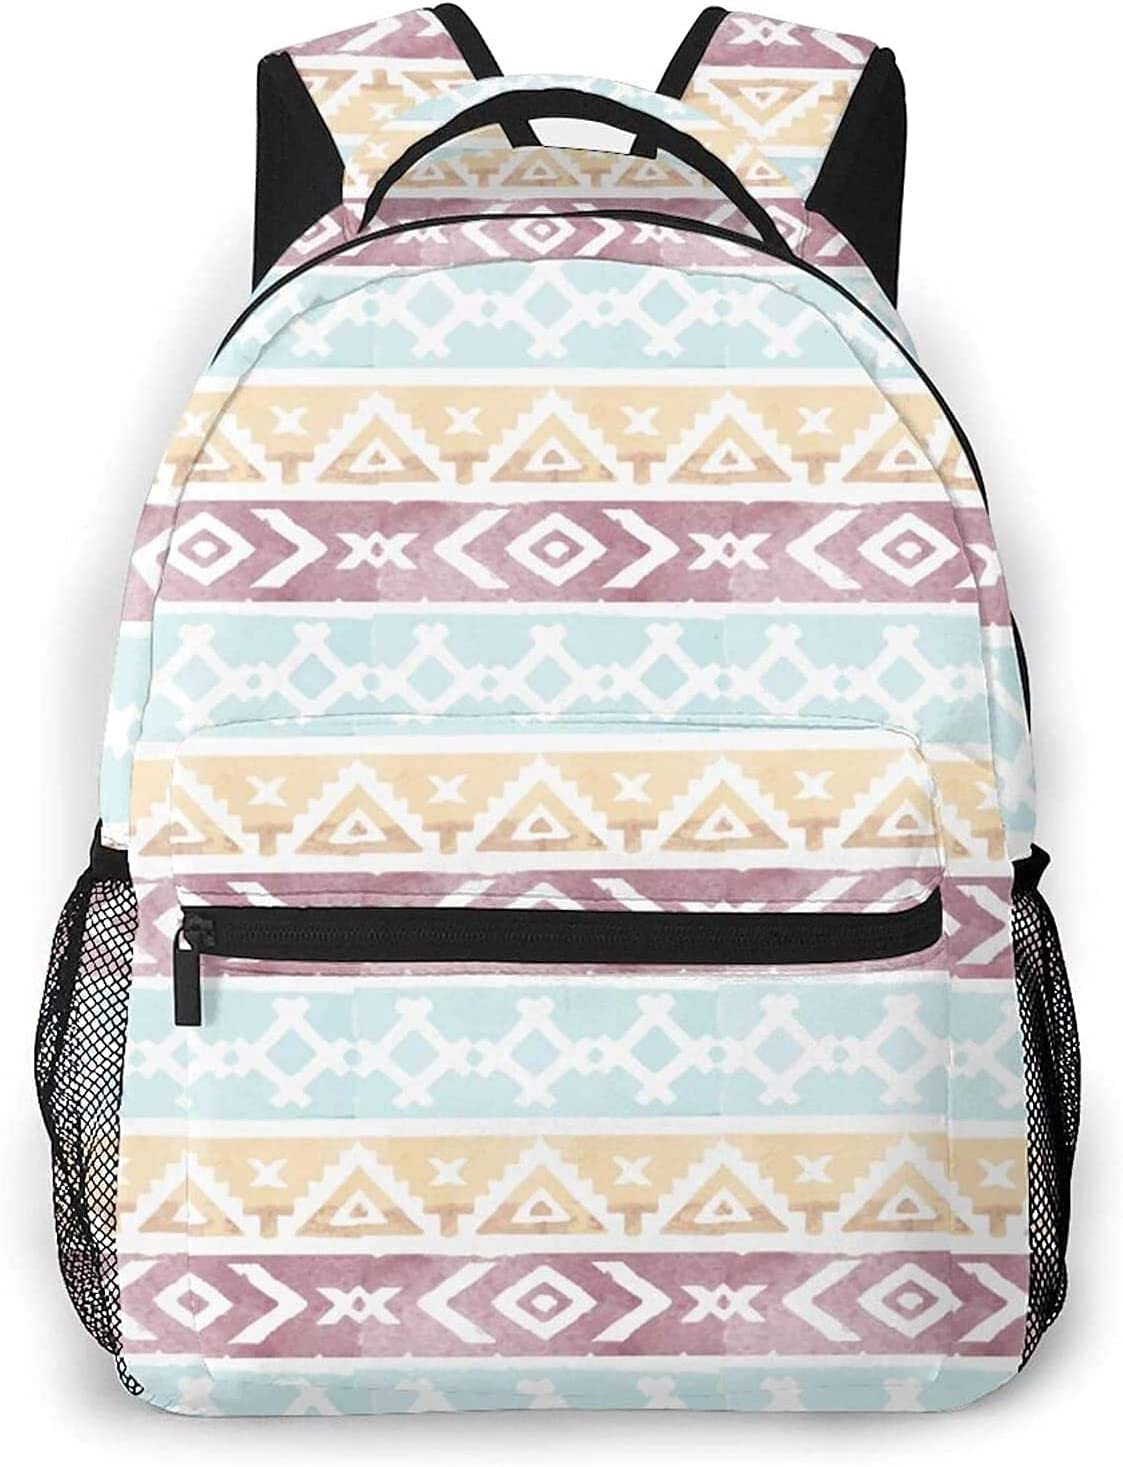 Parrot On The Max 50% OFF Tree Kids Backpacks Elementary for Preschool with Max 81% OFF